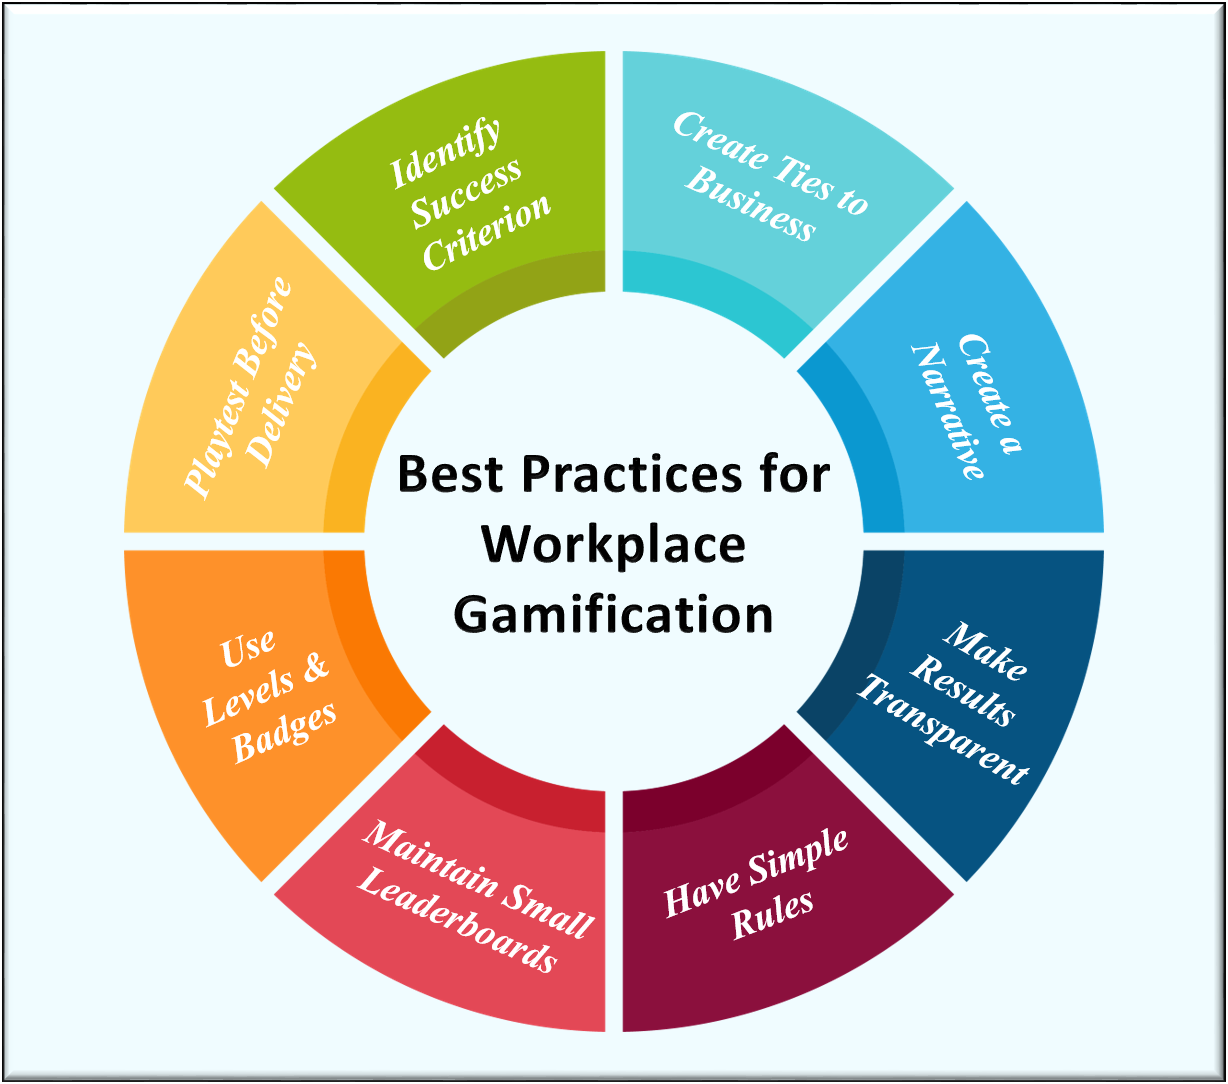 Best Practices for Workplace Gamification